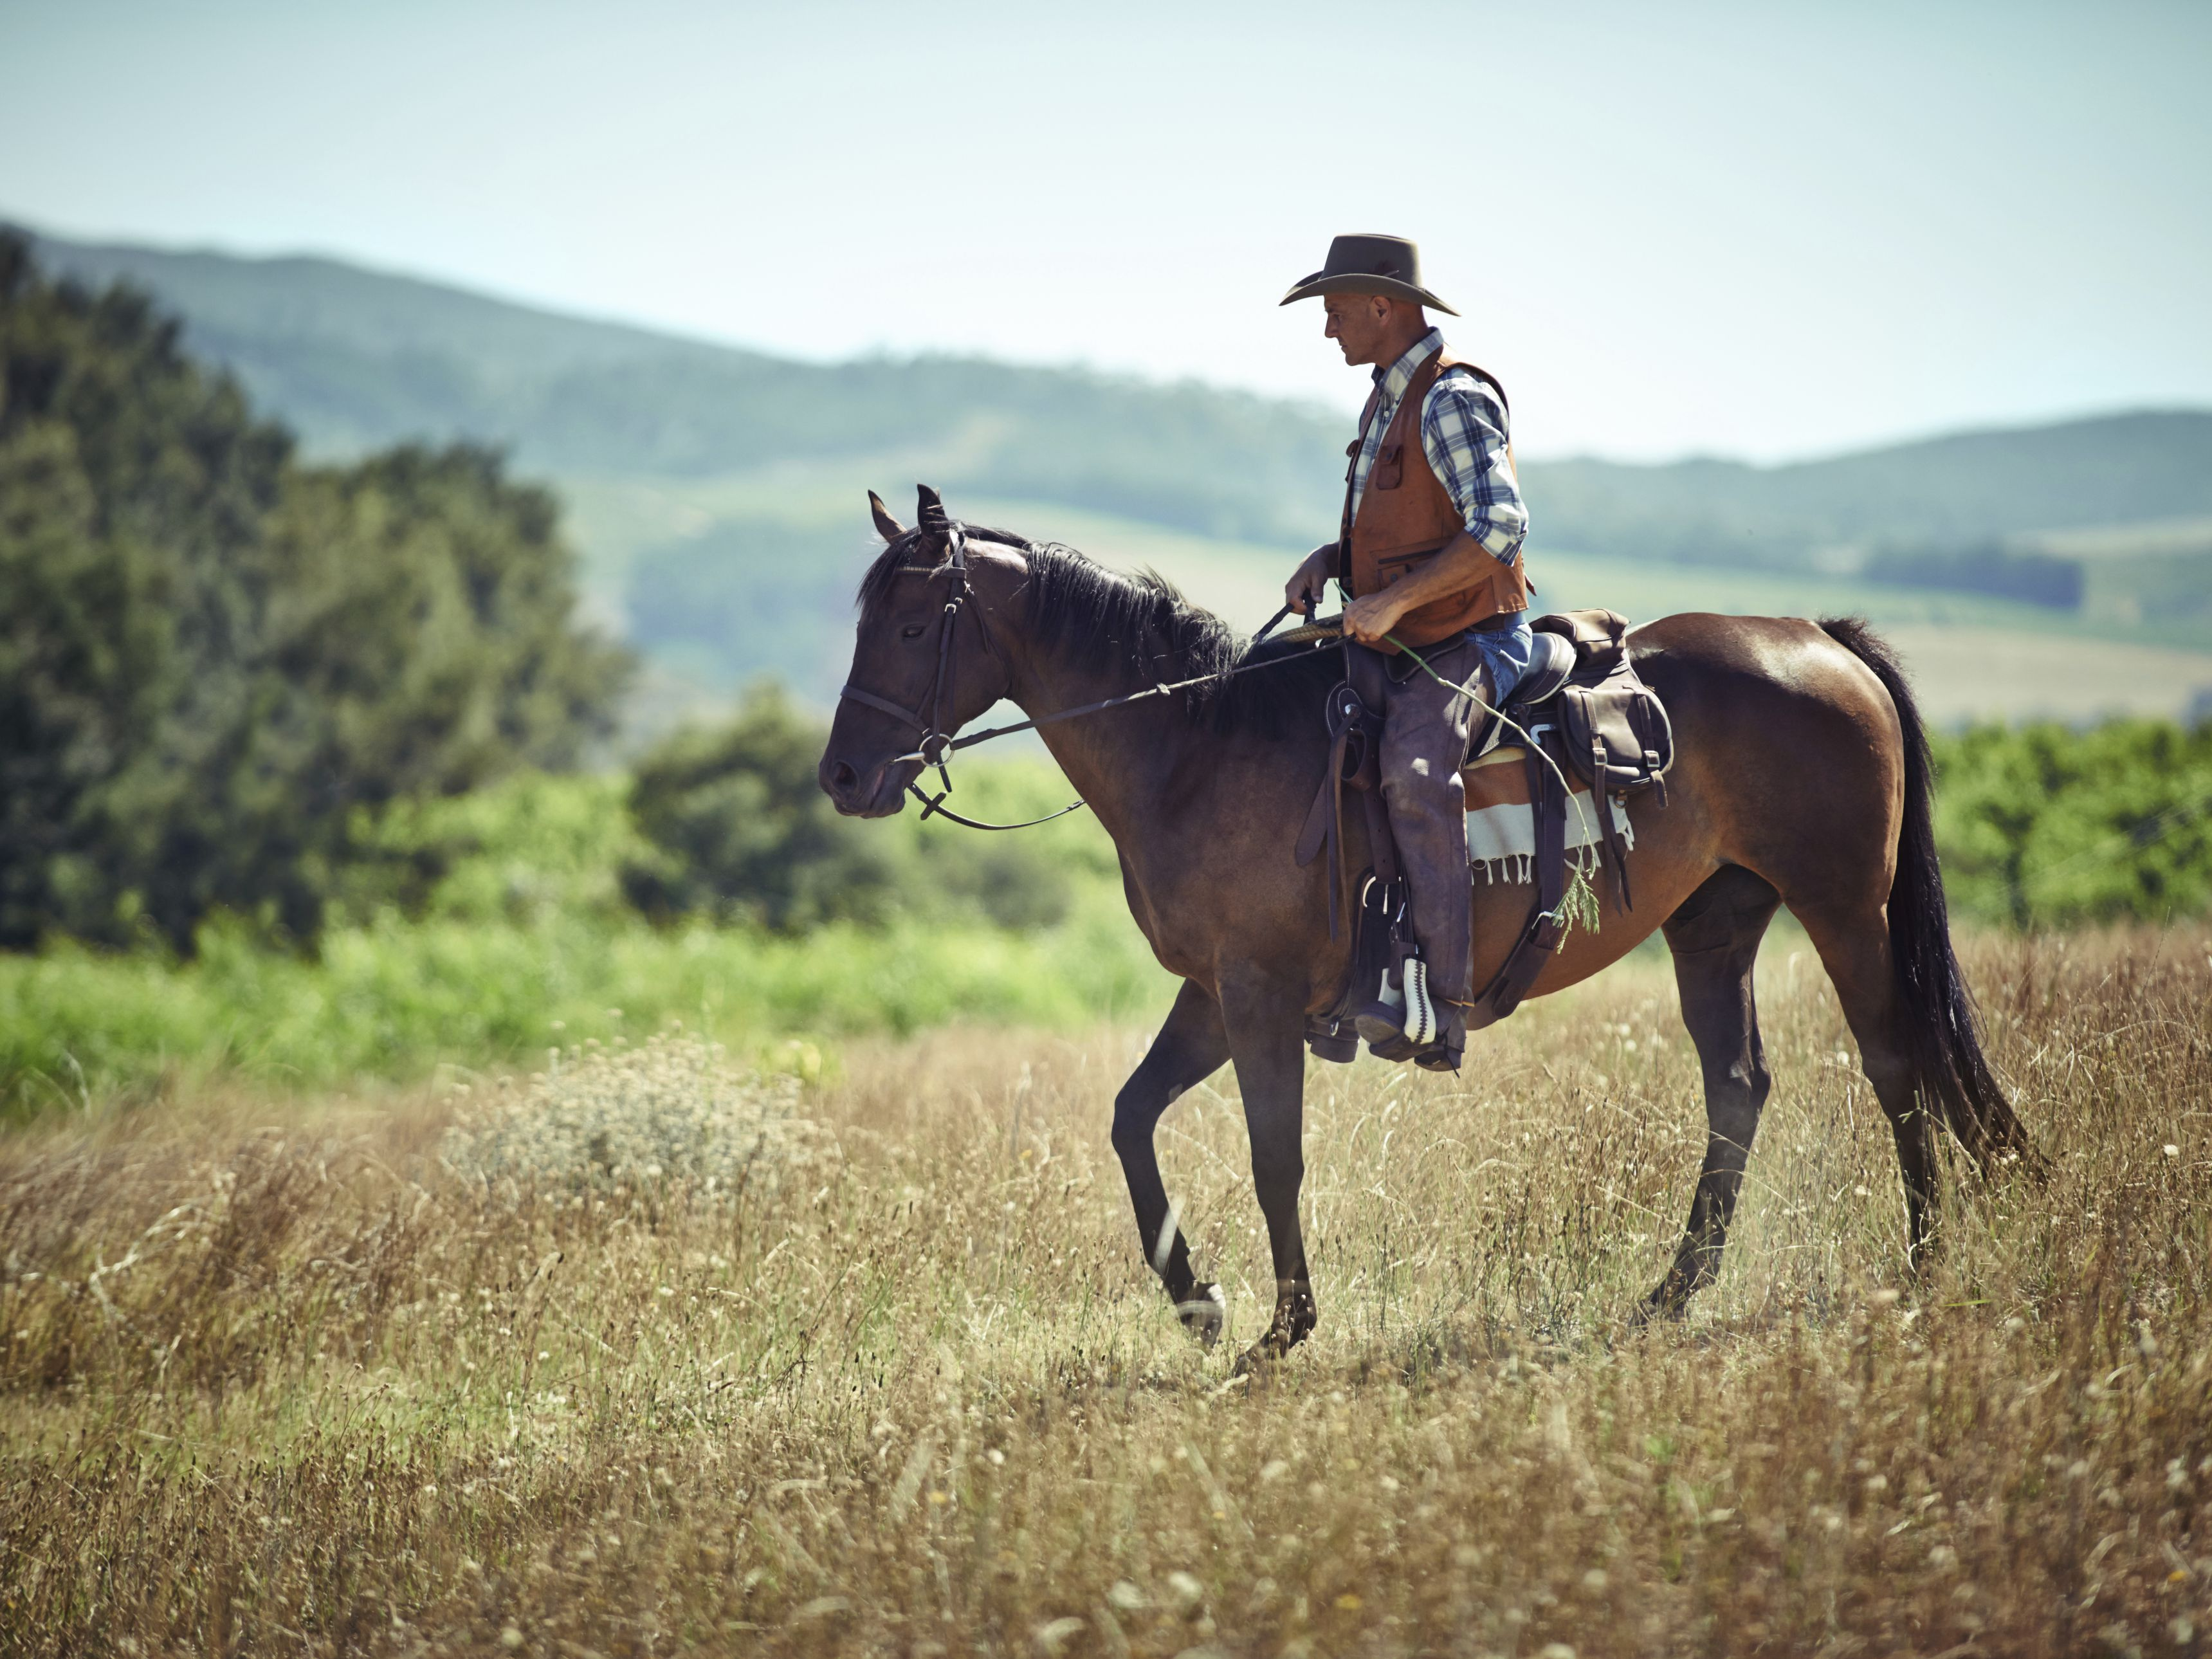 What Is The Difference Between Western And English Riding Styles